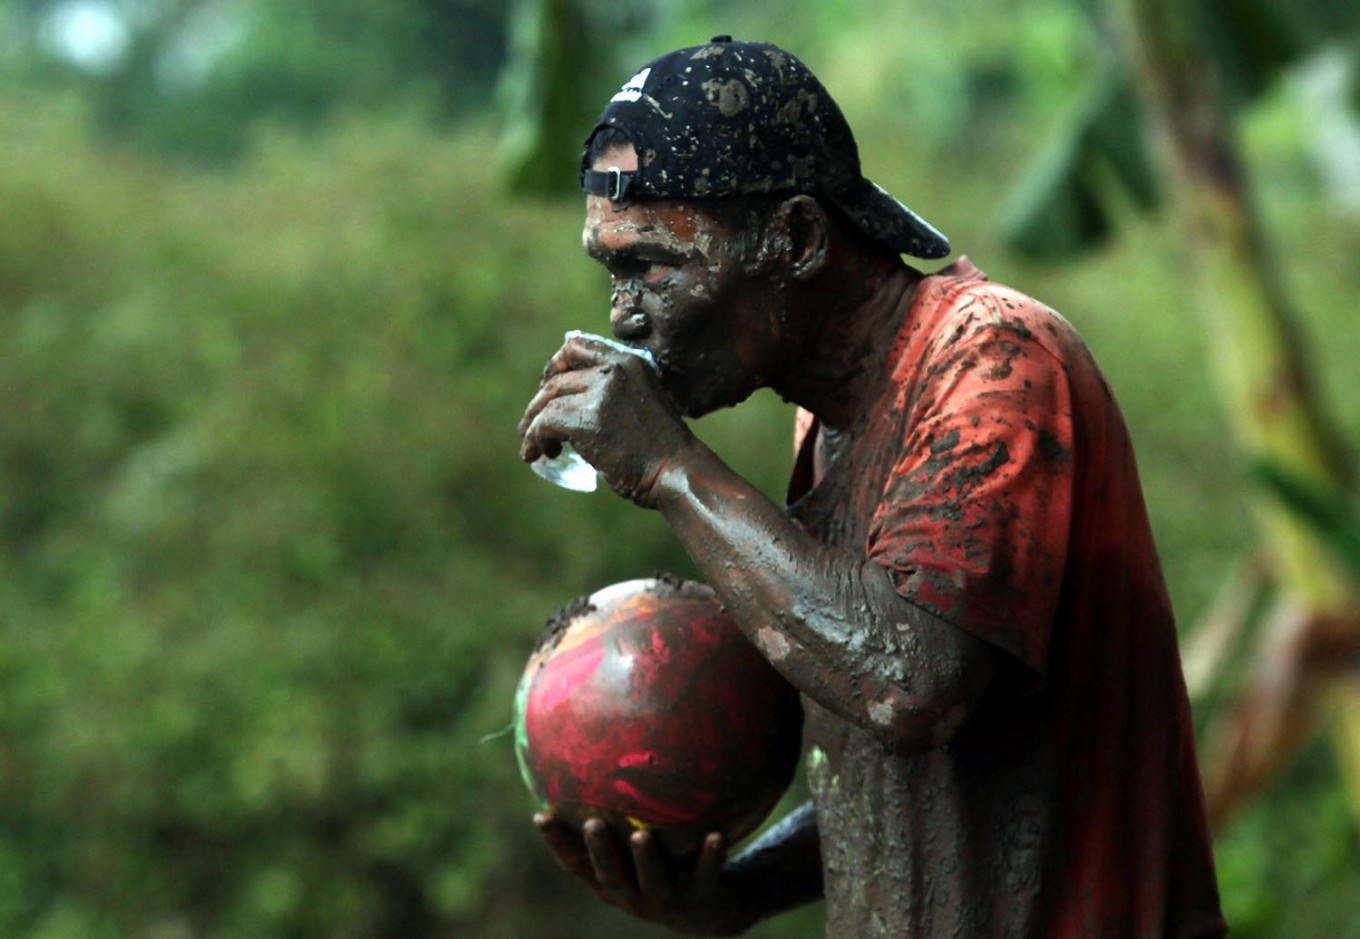 A player with his face covered in mud drinks a glass of water. JP/Boy T. Harjanto